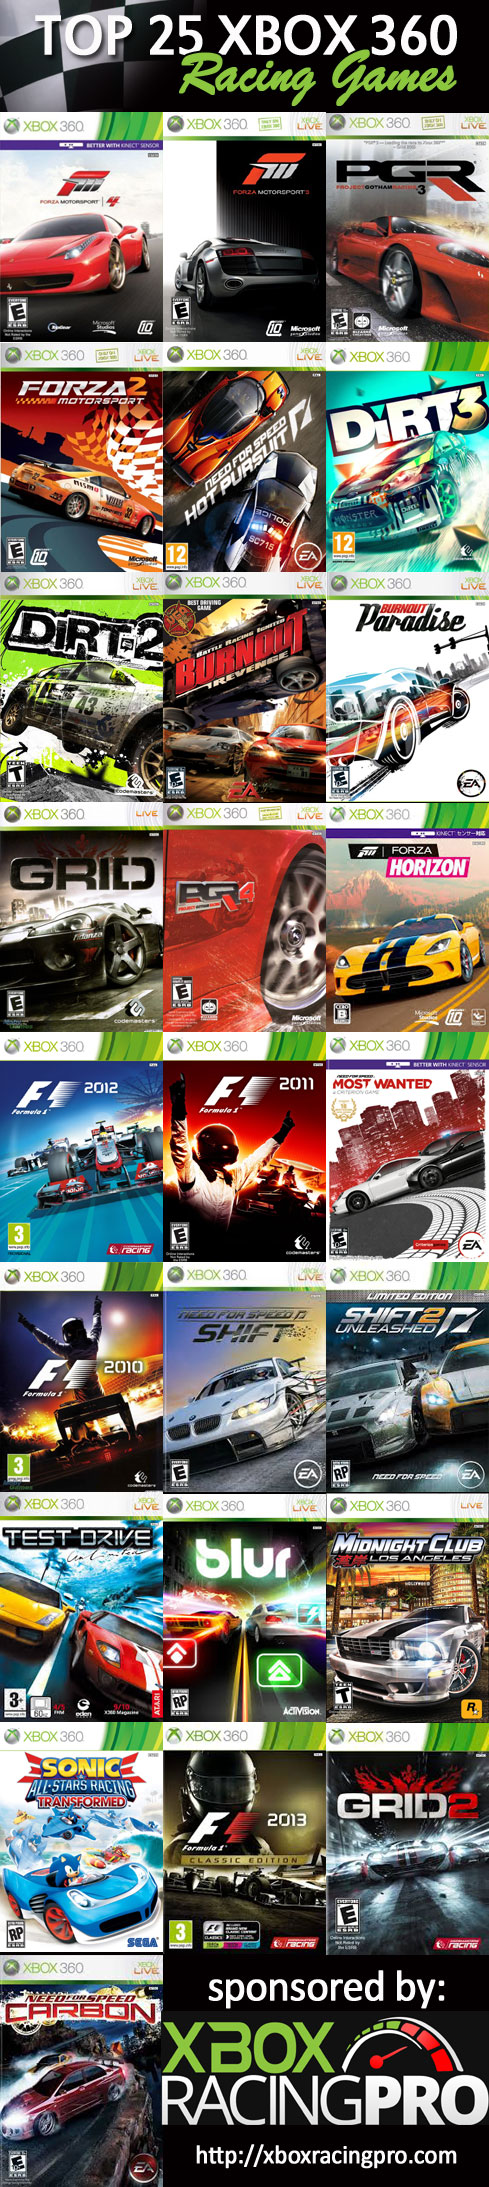 Top 25 Xbox 360 Racing Games